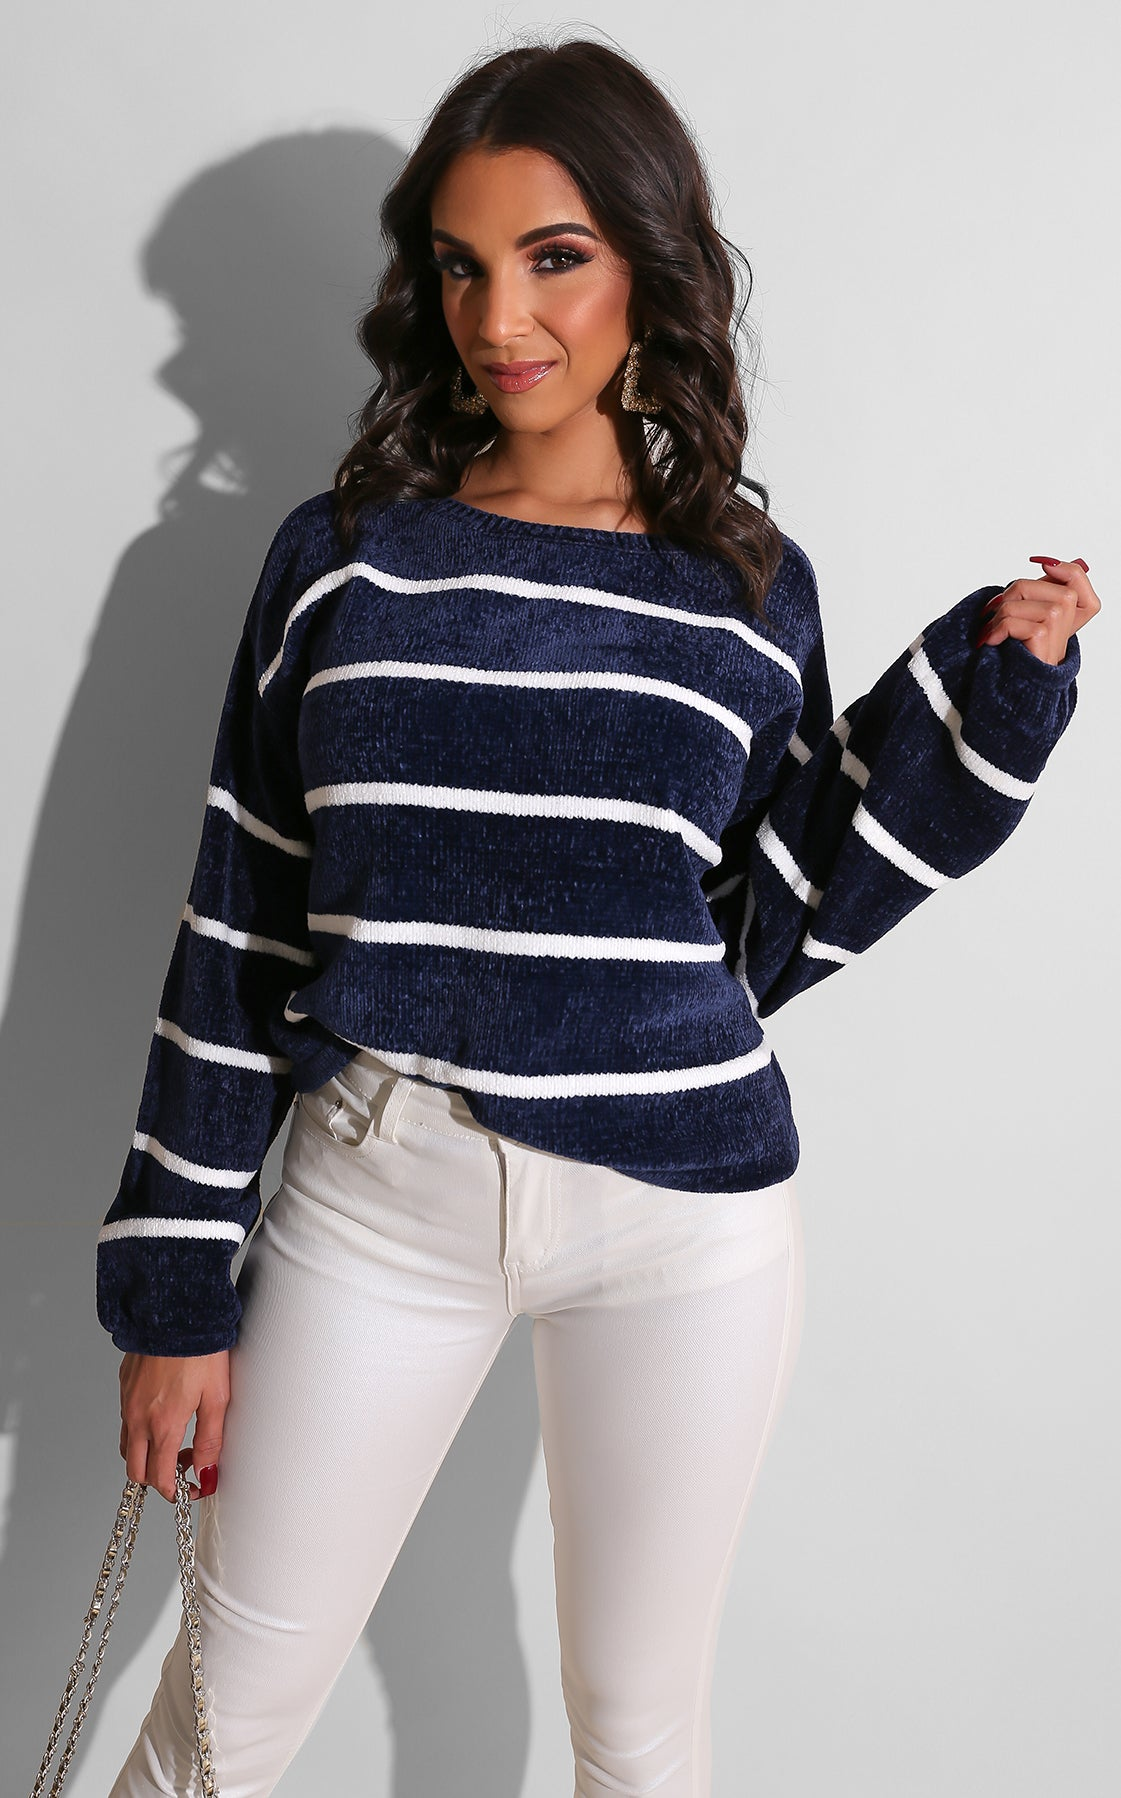 Sister Cozy Sweater Blue